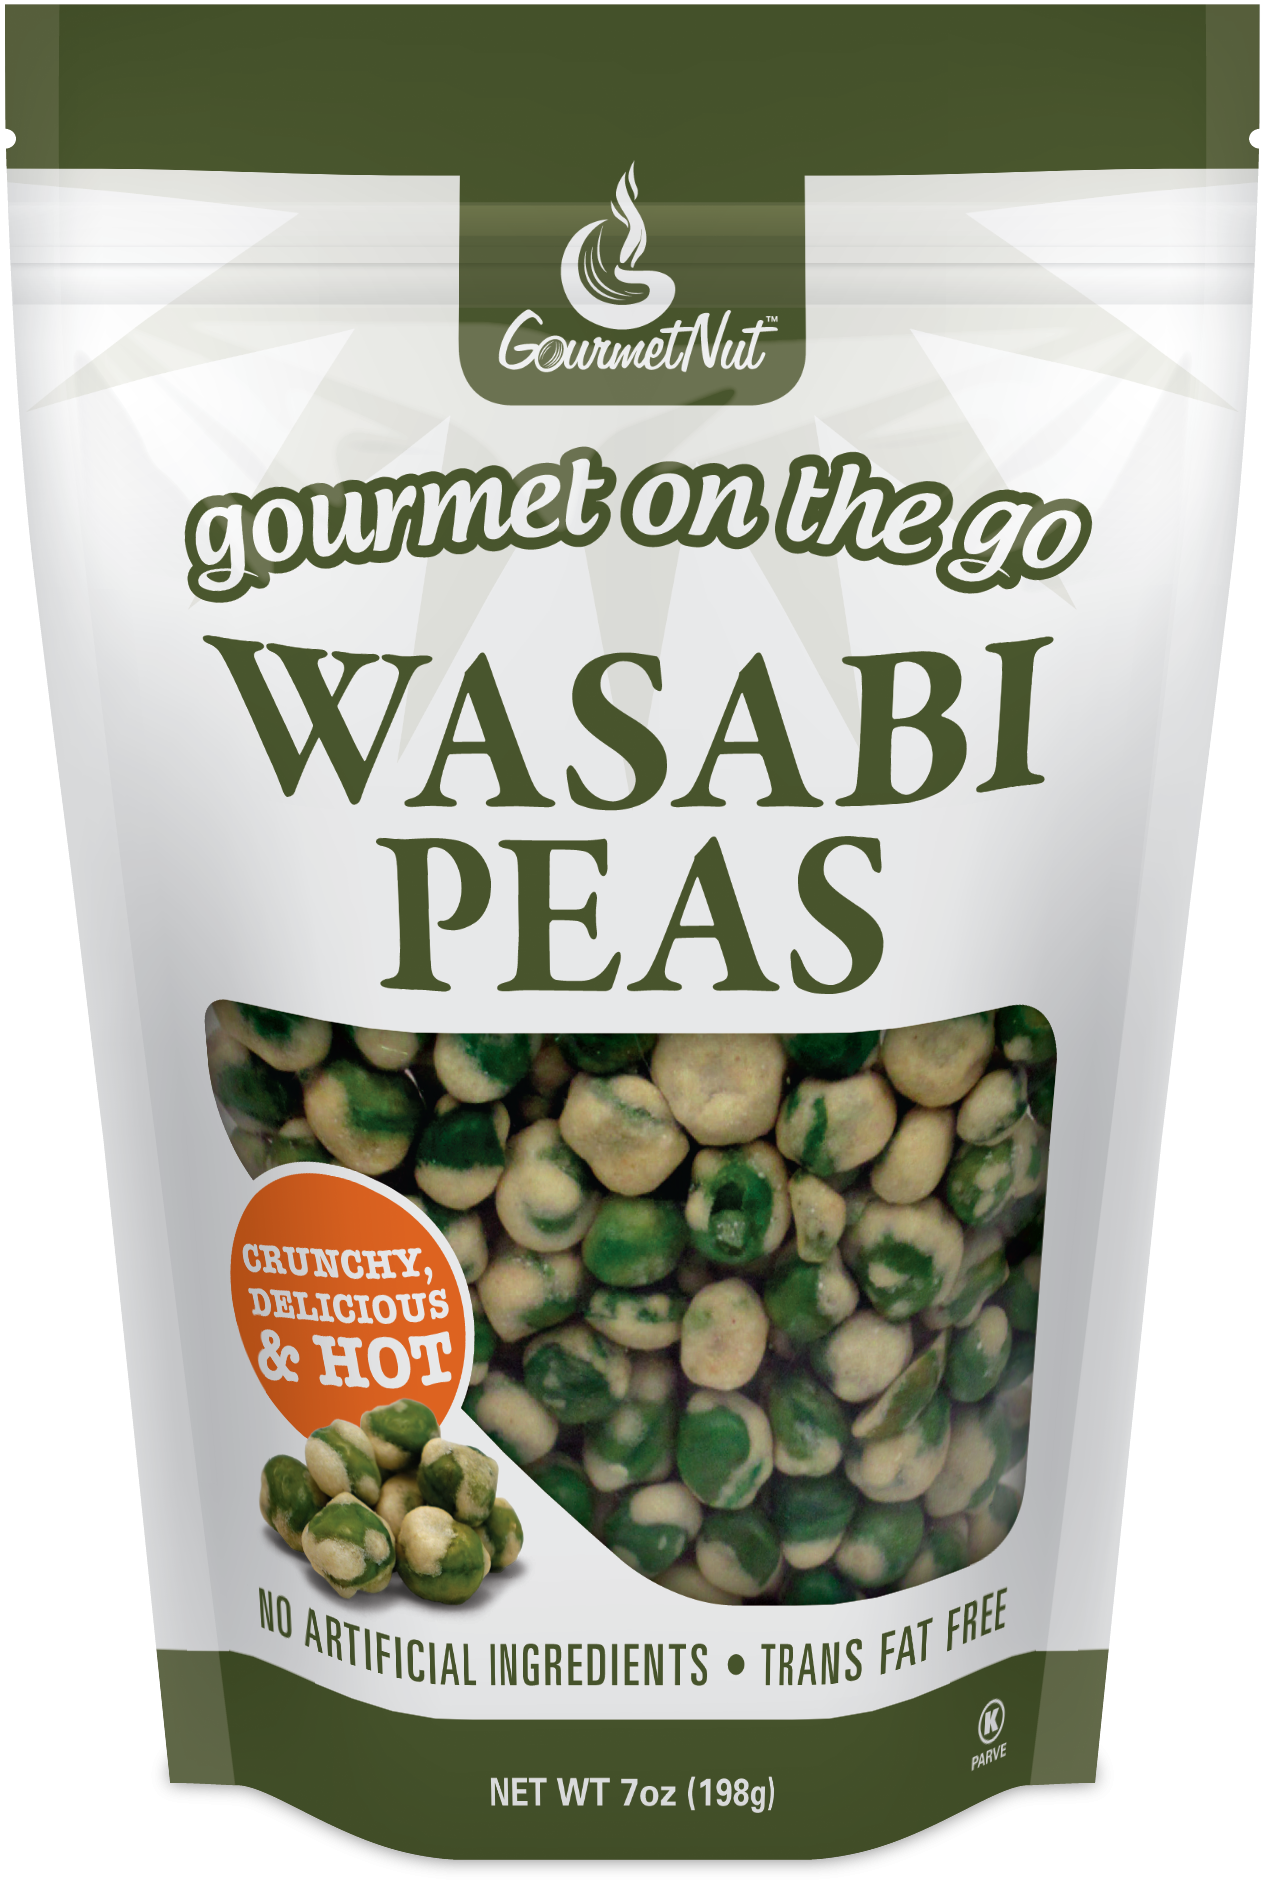 Nuts transparent pea. Wasabi peas pack